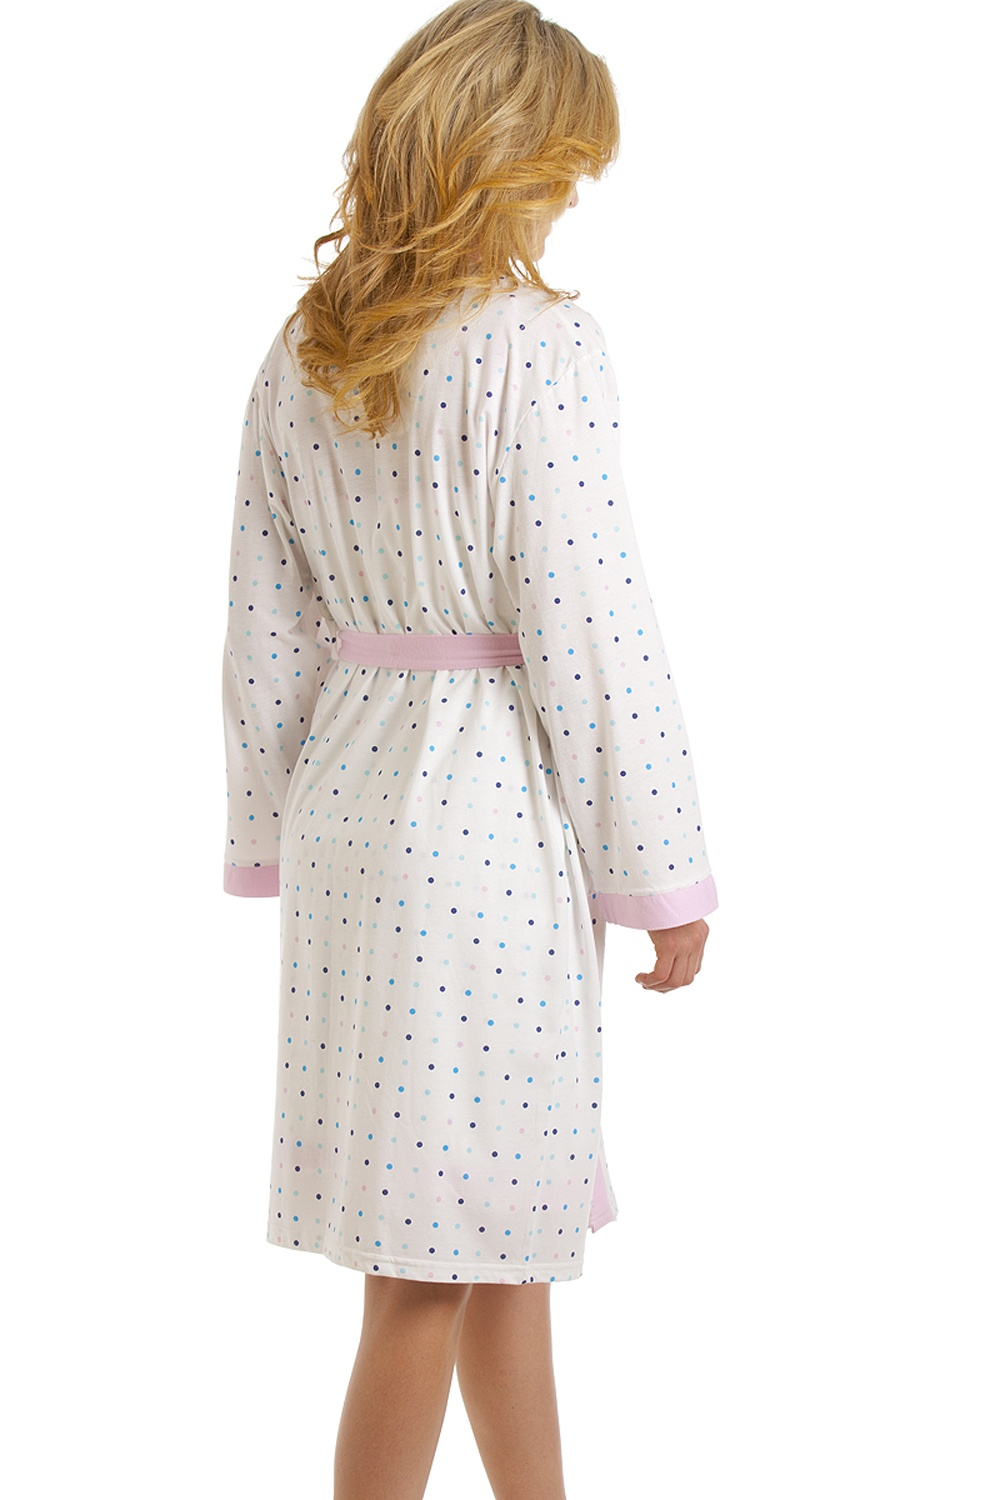 Buy Dressing gowns from the Womens department at Debenhams. You'll find the widest range of Dressing gowns products online and delivered to your door. Shop today! Menu Black 'Caroline' lightweight morning gown Save. Was £ Now £ Lounge & Sleep Navy floral print fleece long sleeve dressing gown.